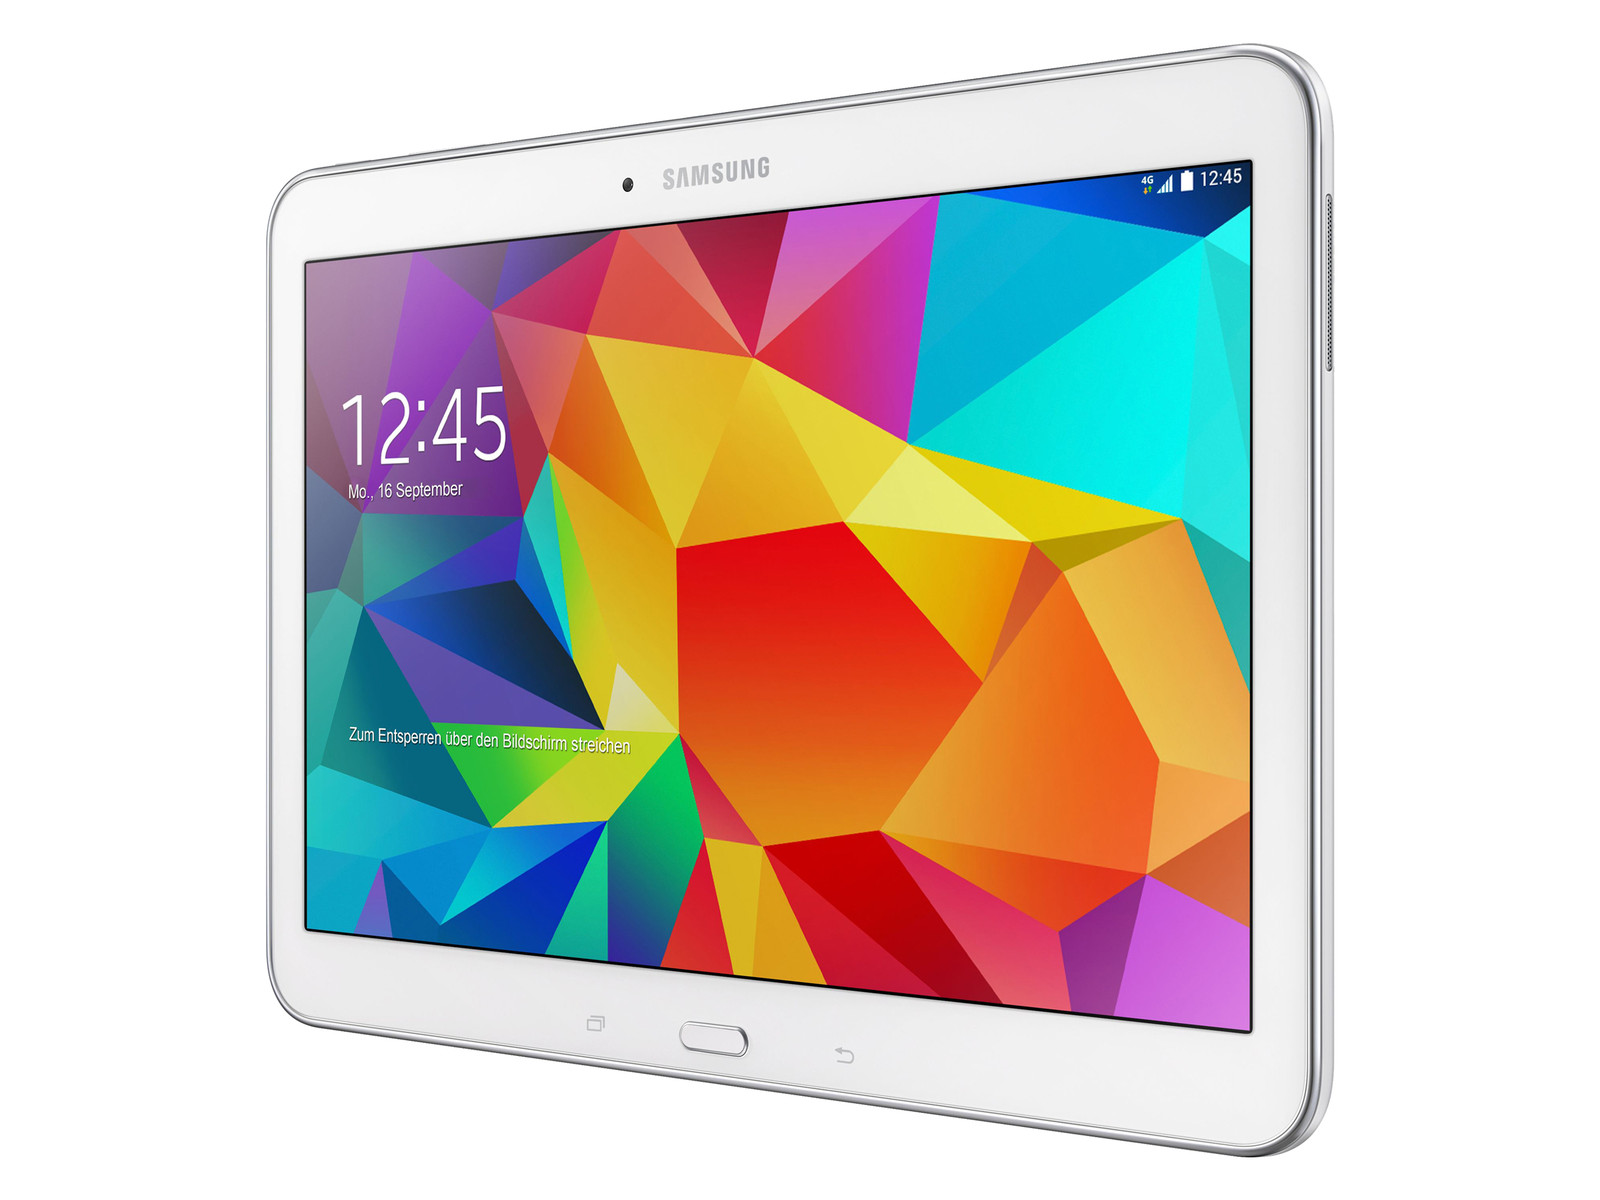 Galaxy Tab 4 101 Wallpaper Samsung Tablet Galaxy Tab 4, Hd